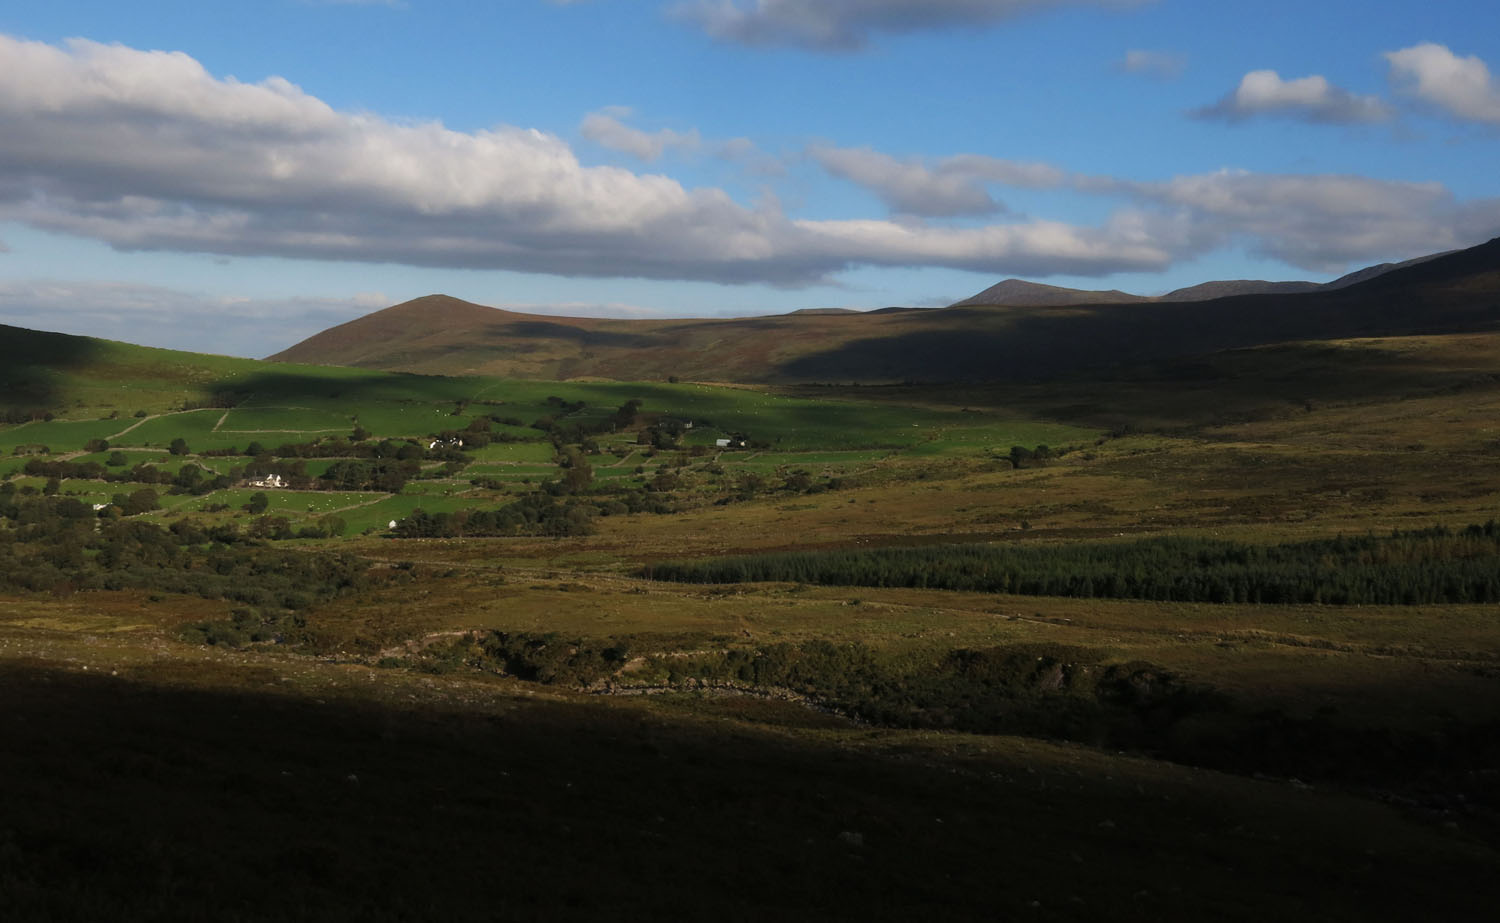 Ireland-Sights-And-Scenery-Kerry-Hills